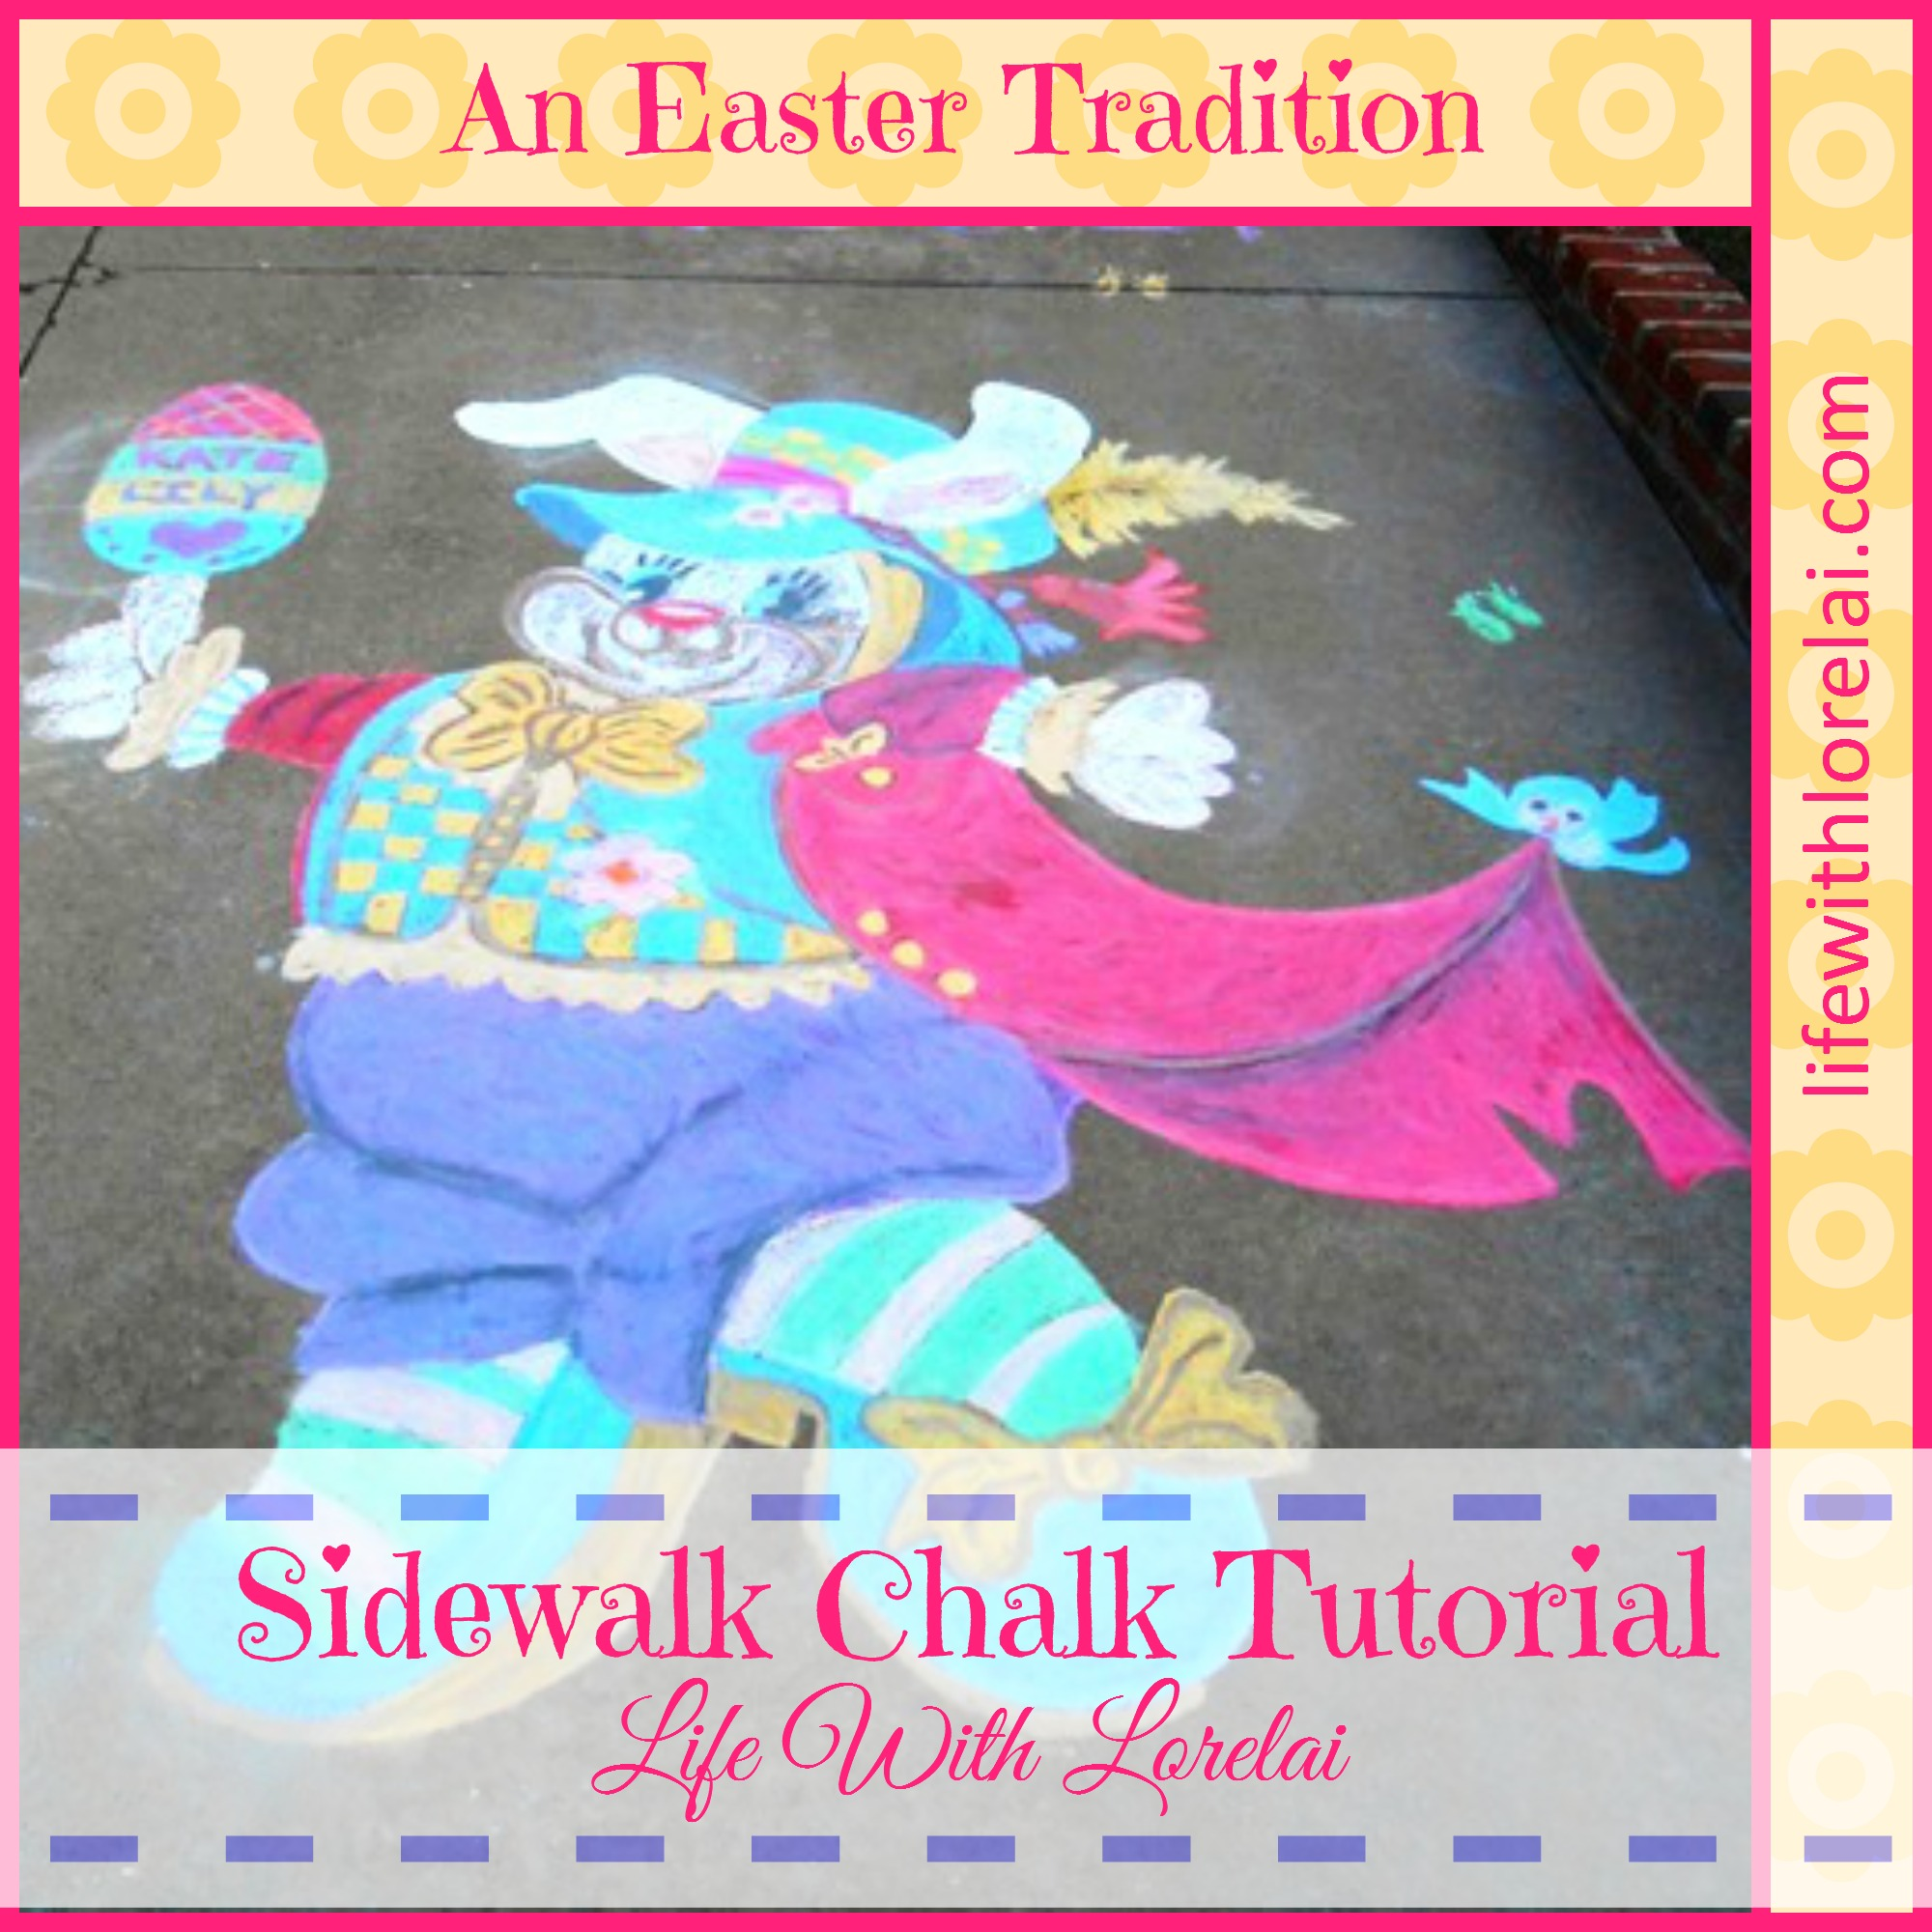 Sidewalk Chalk Tutorial - An Easter Tradition - Life With Lorelai